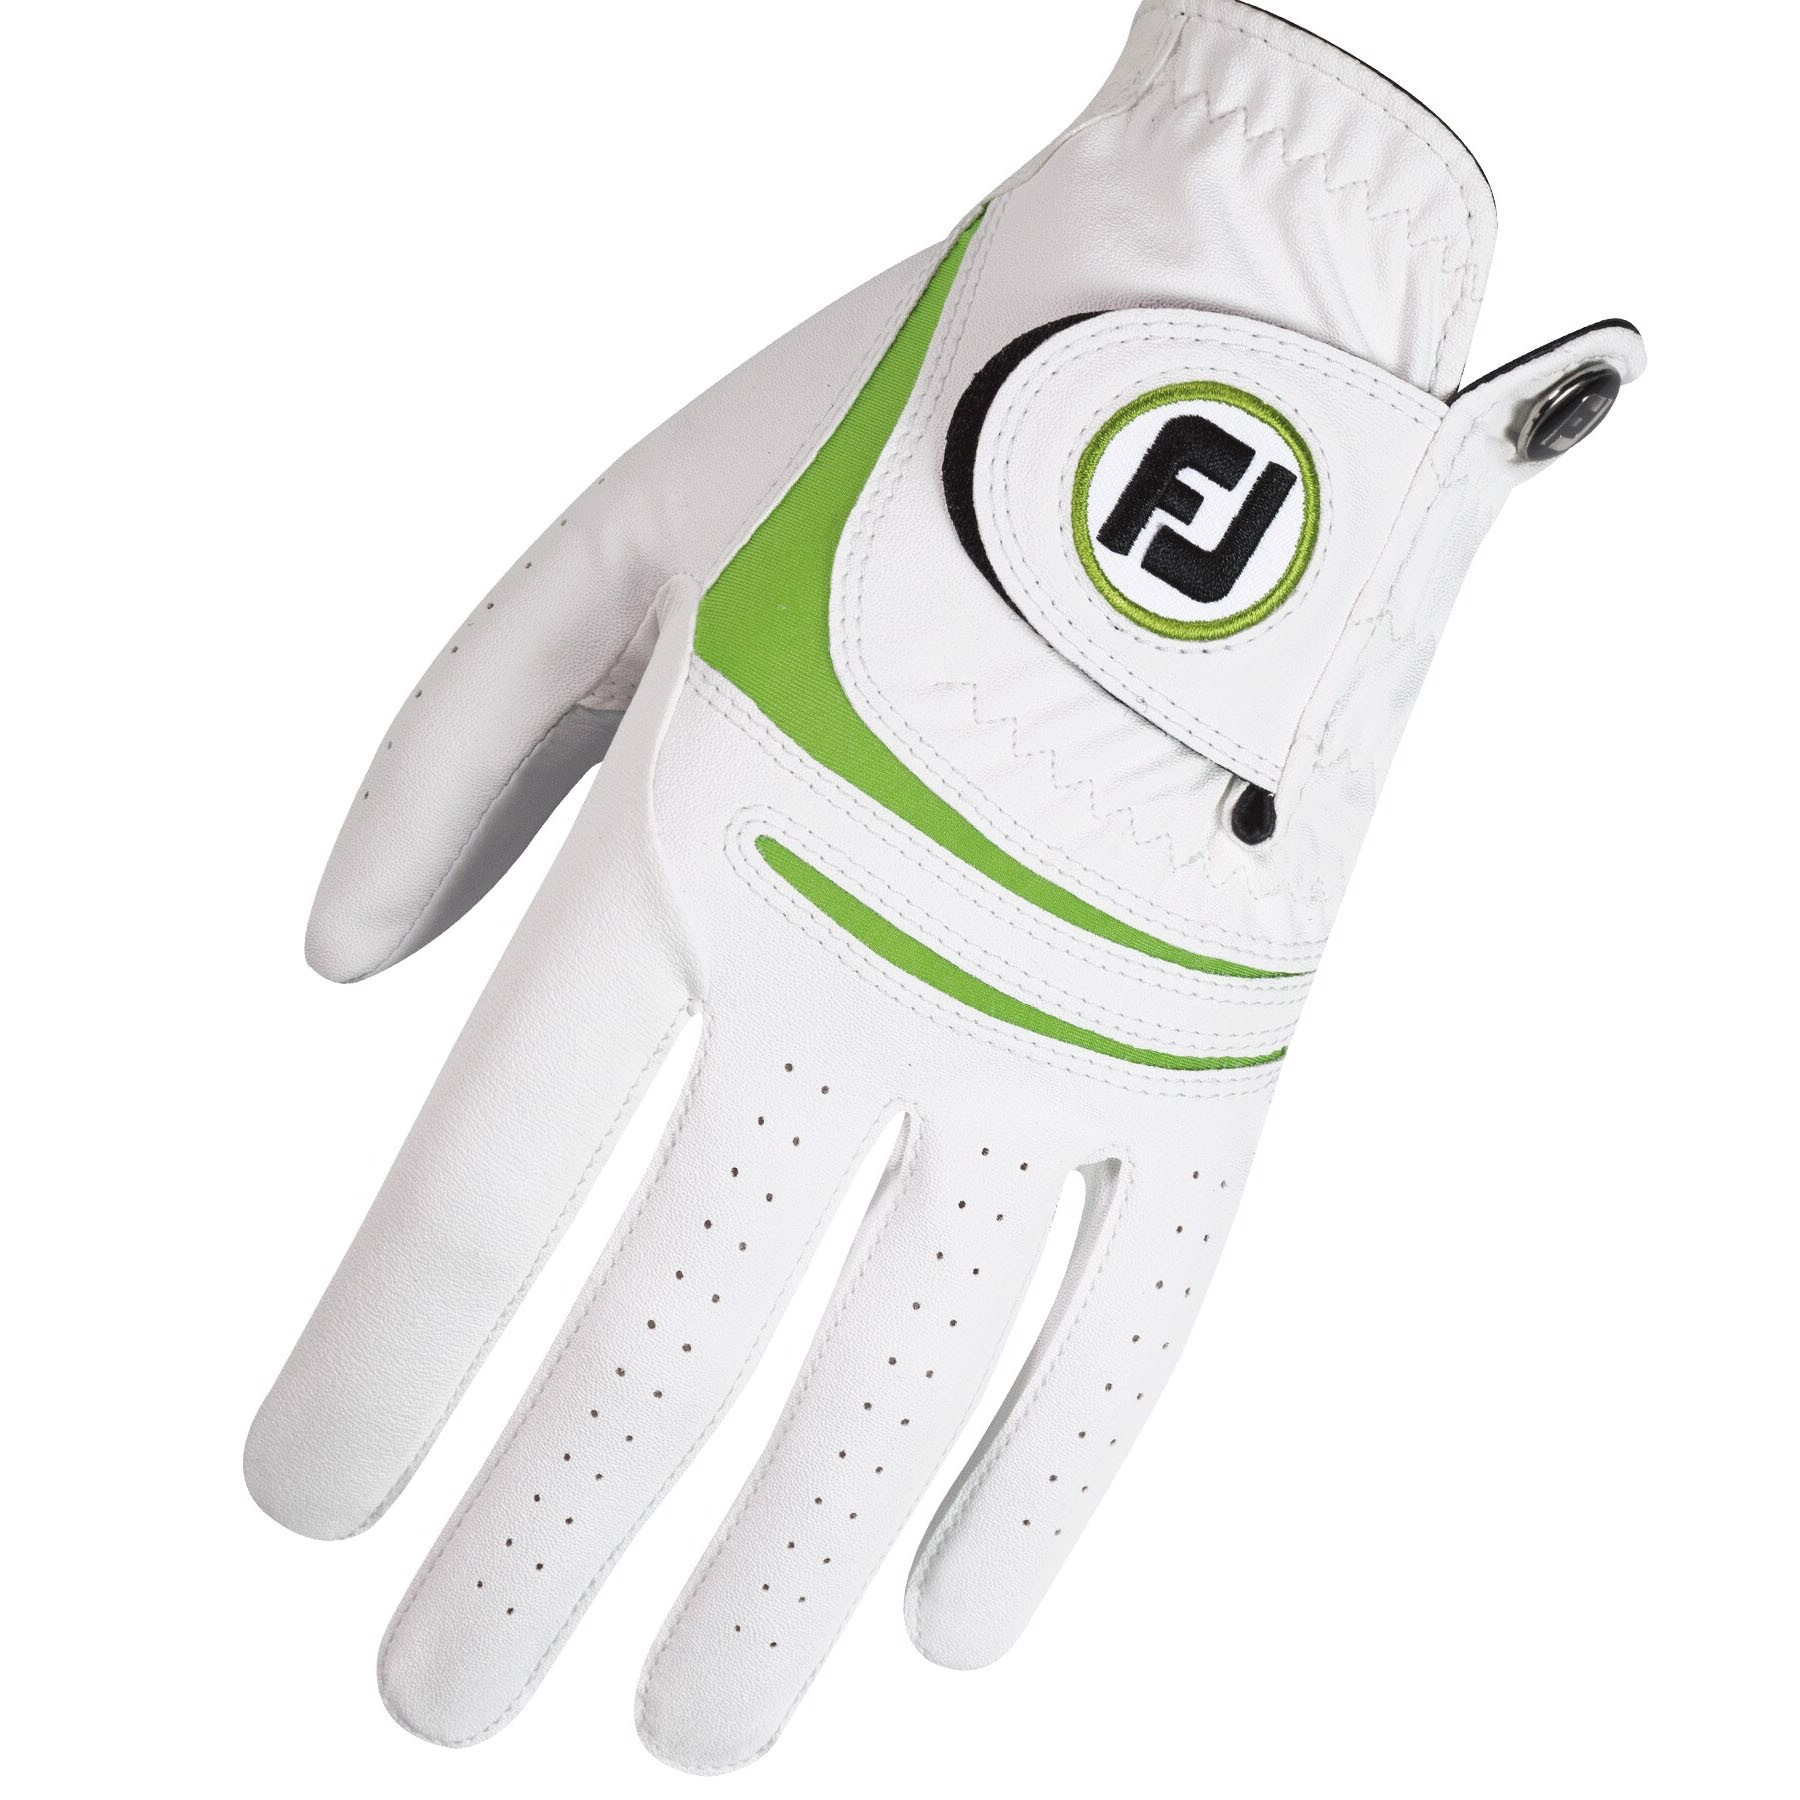 Găng tay golf WeatherSof FJ 66298 | Footjoy